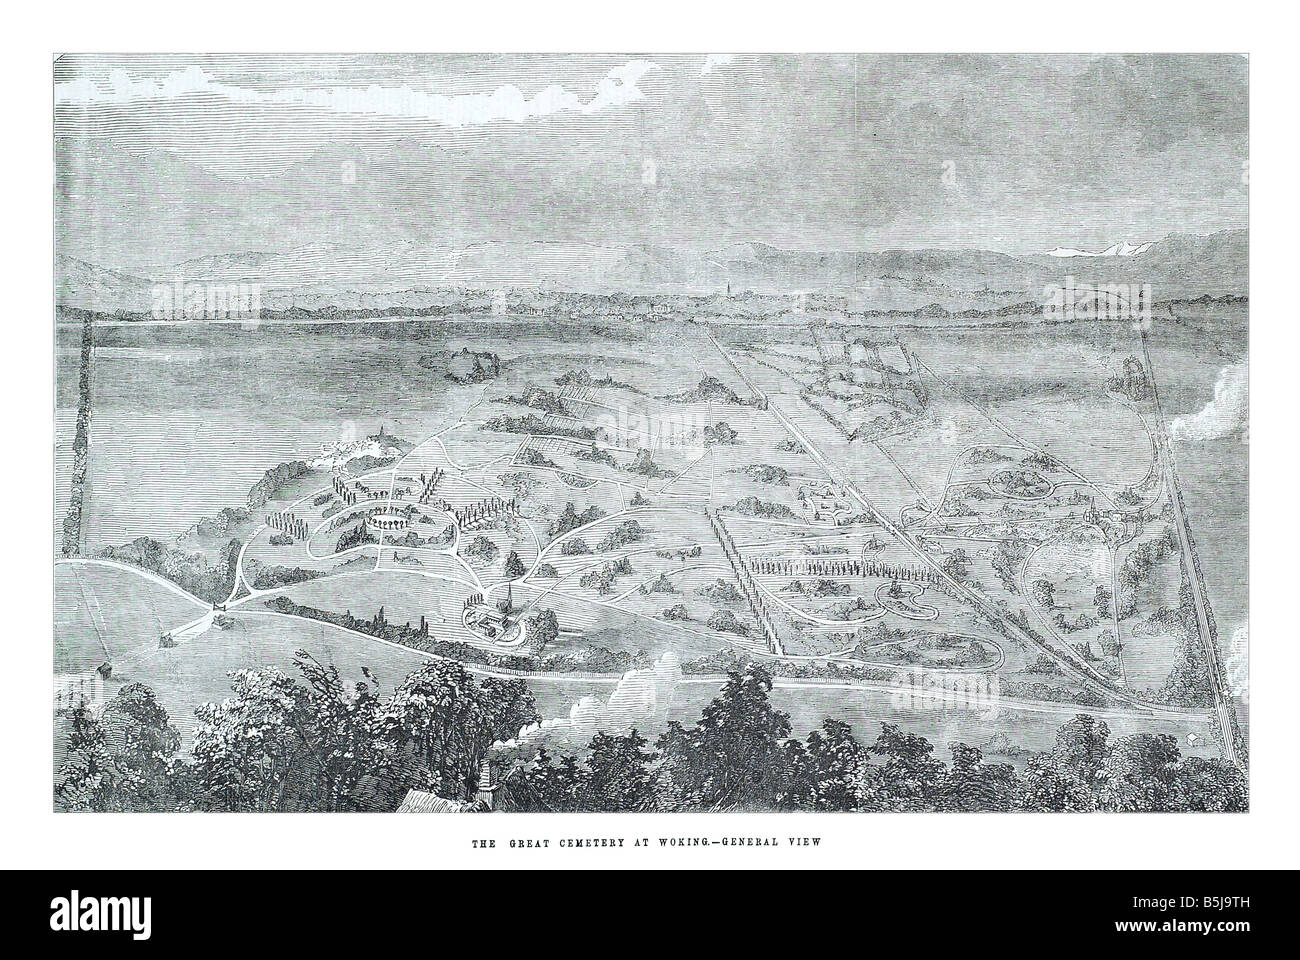 The great cemetery at woking general view April 26 1856 The Illustrated London News Page 464 Stock Photo